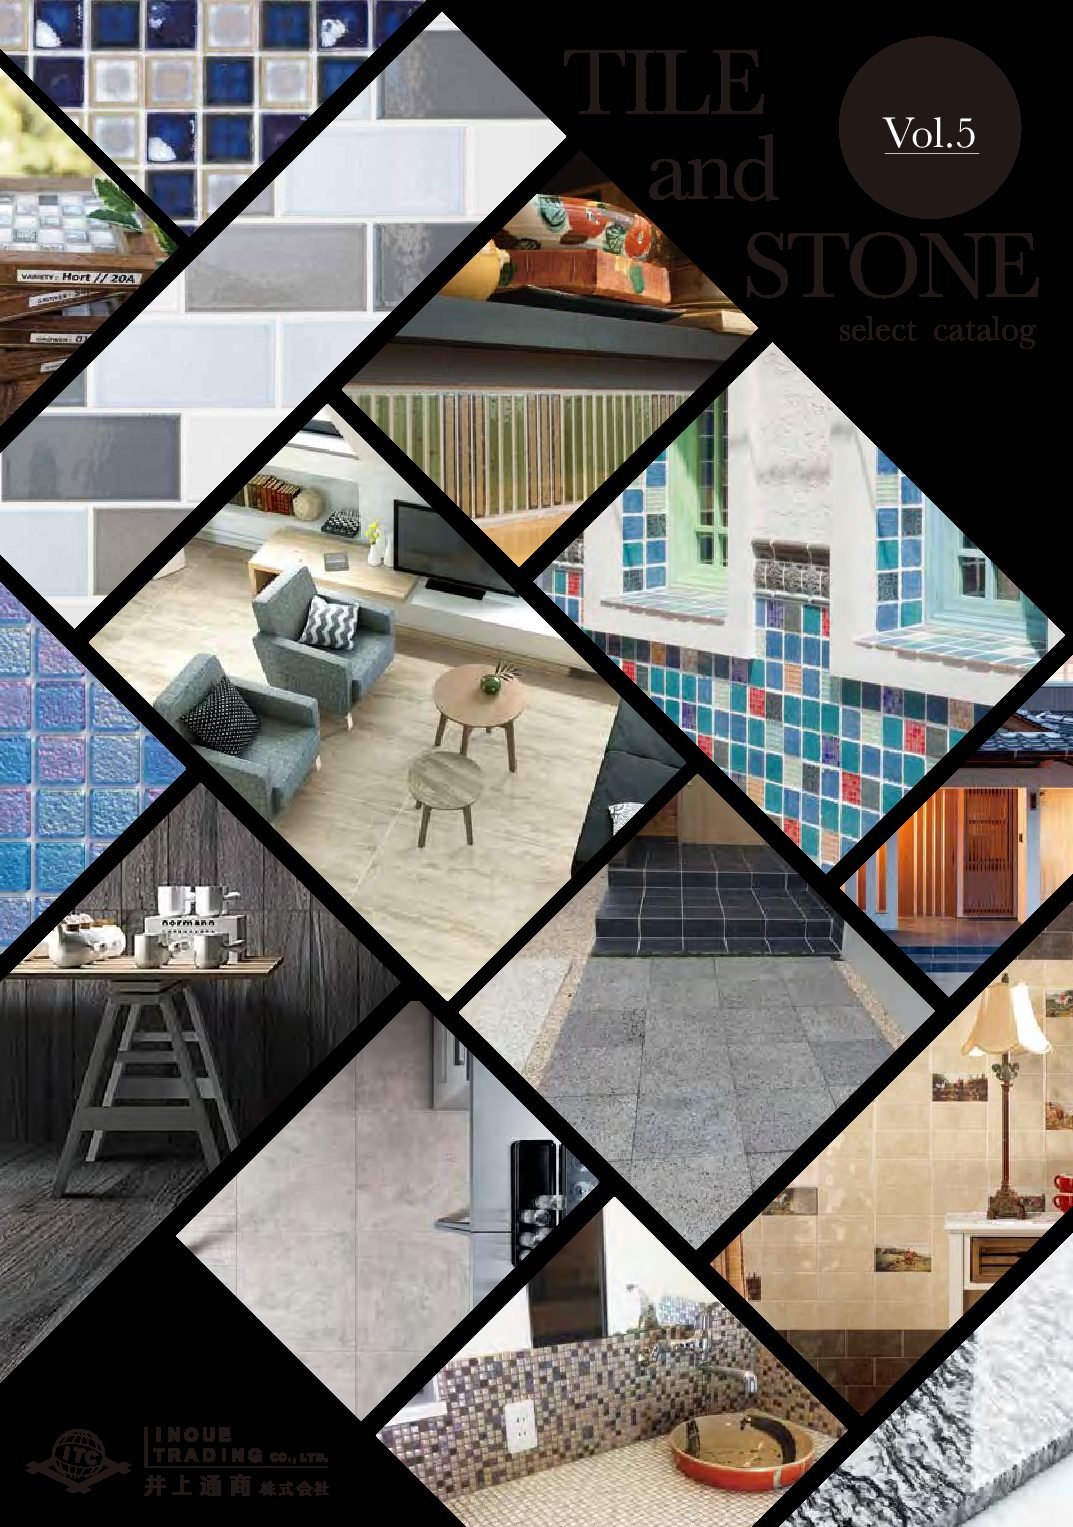 TILE and STONE select catalog vol.5